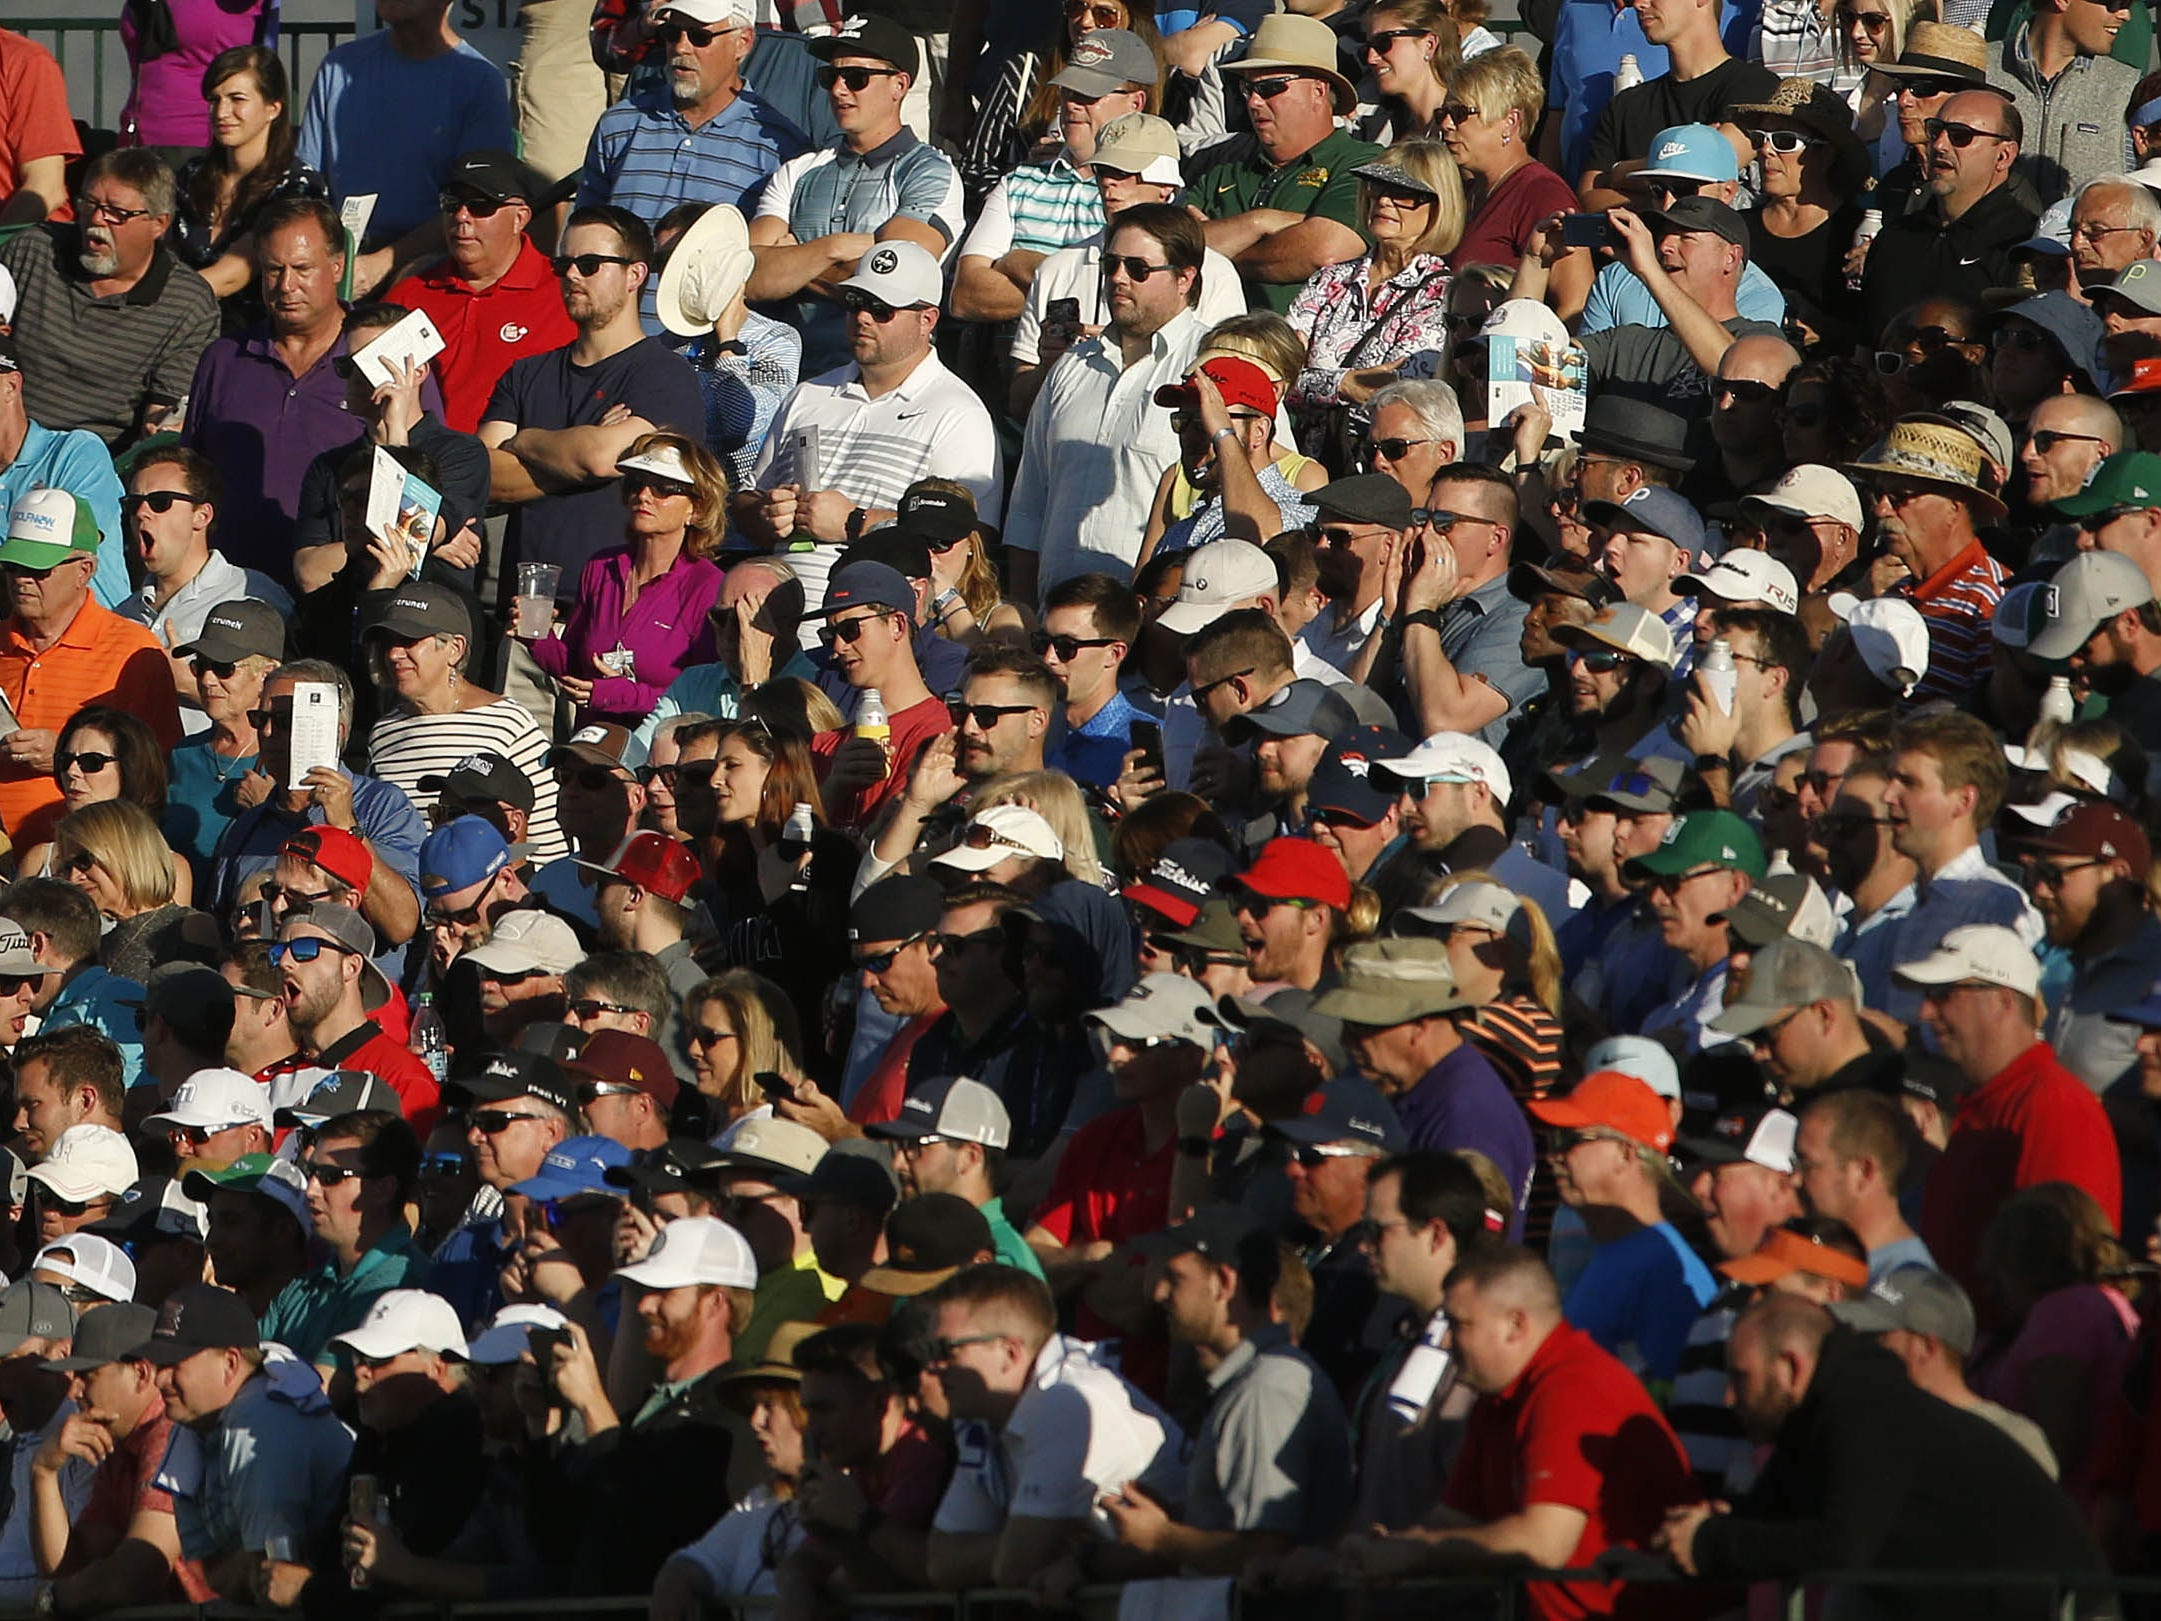 Fans watch Bubba Watson putt on the 16th hole during first round of the Waste Management Phoenix Open at TPC Scottsdale in Scottsdale, Ariz. on January 31, 2019.